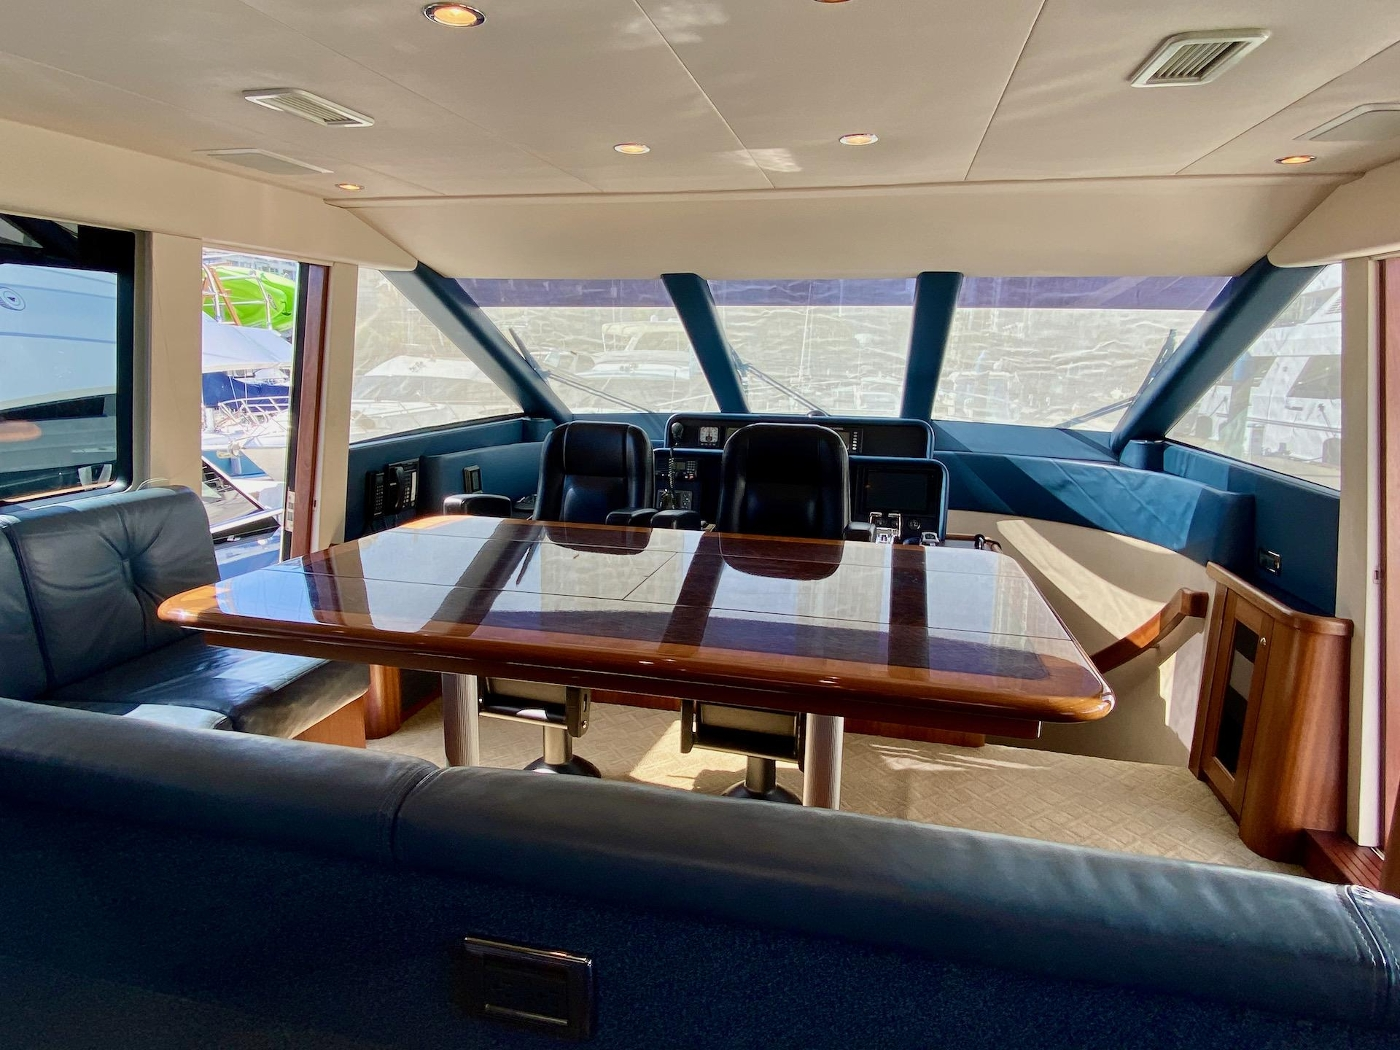 2004 Pacific Mariner 65 Diamond, Galley to pilothouse